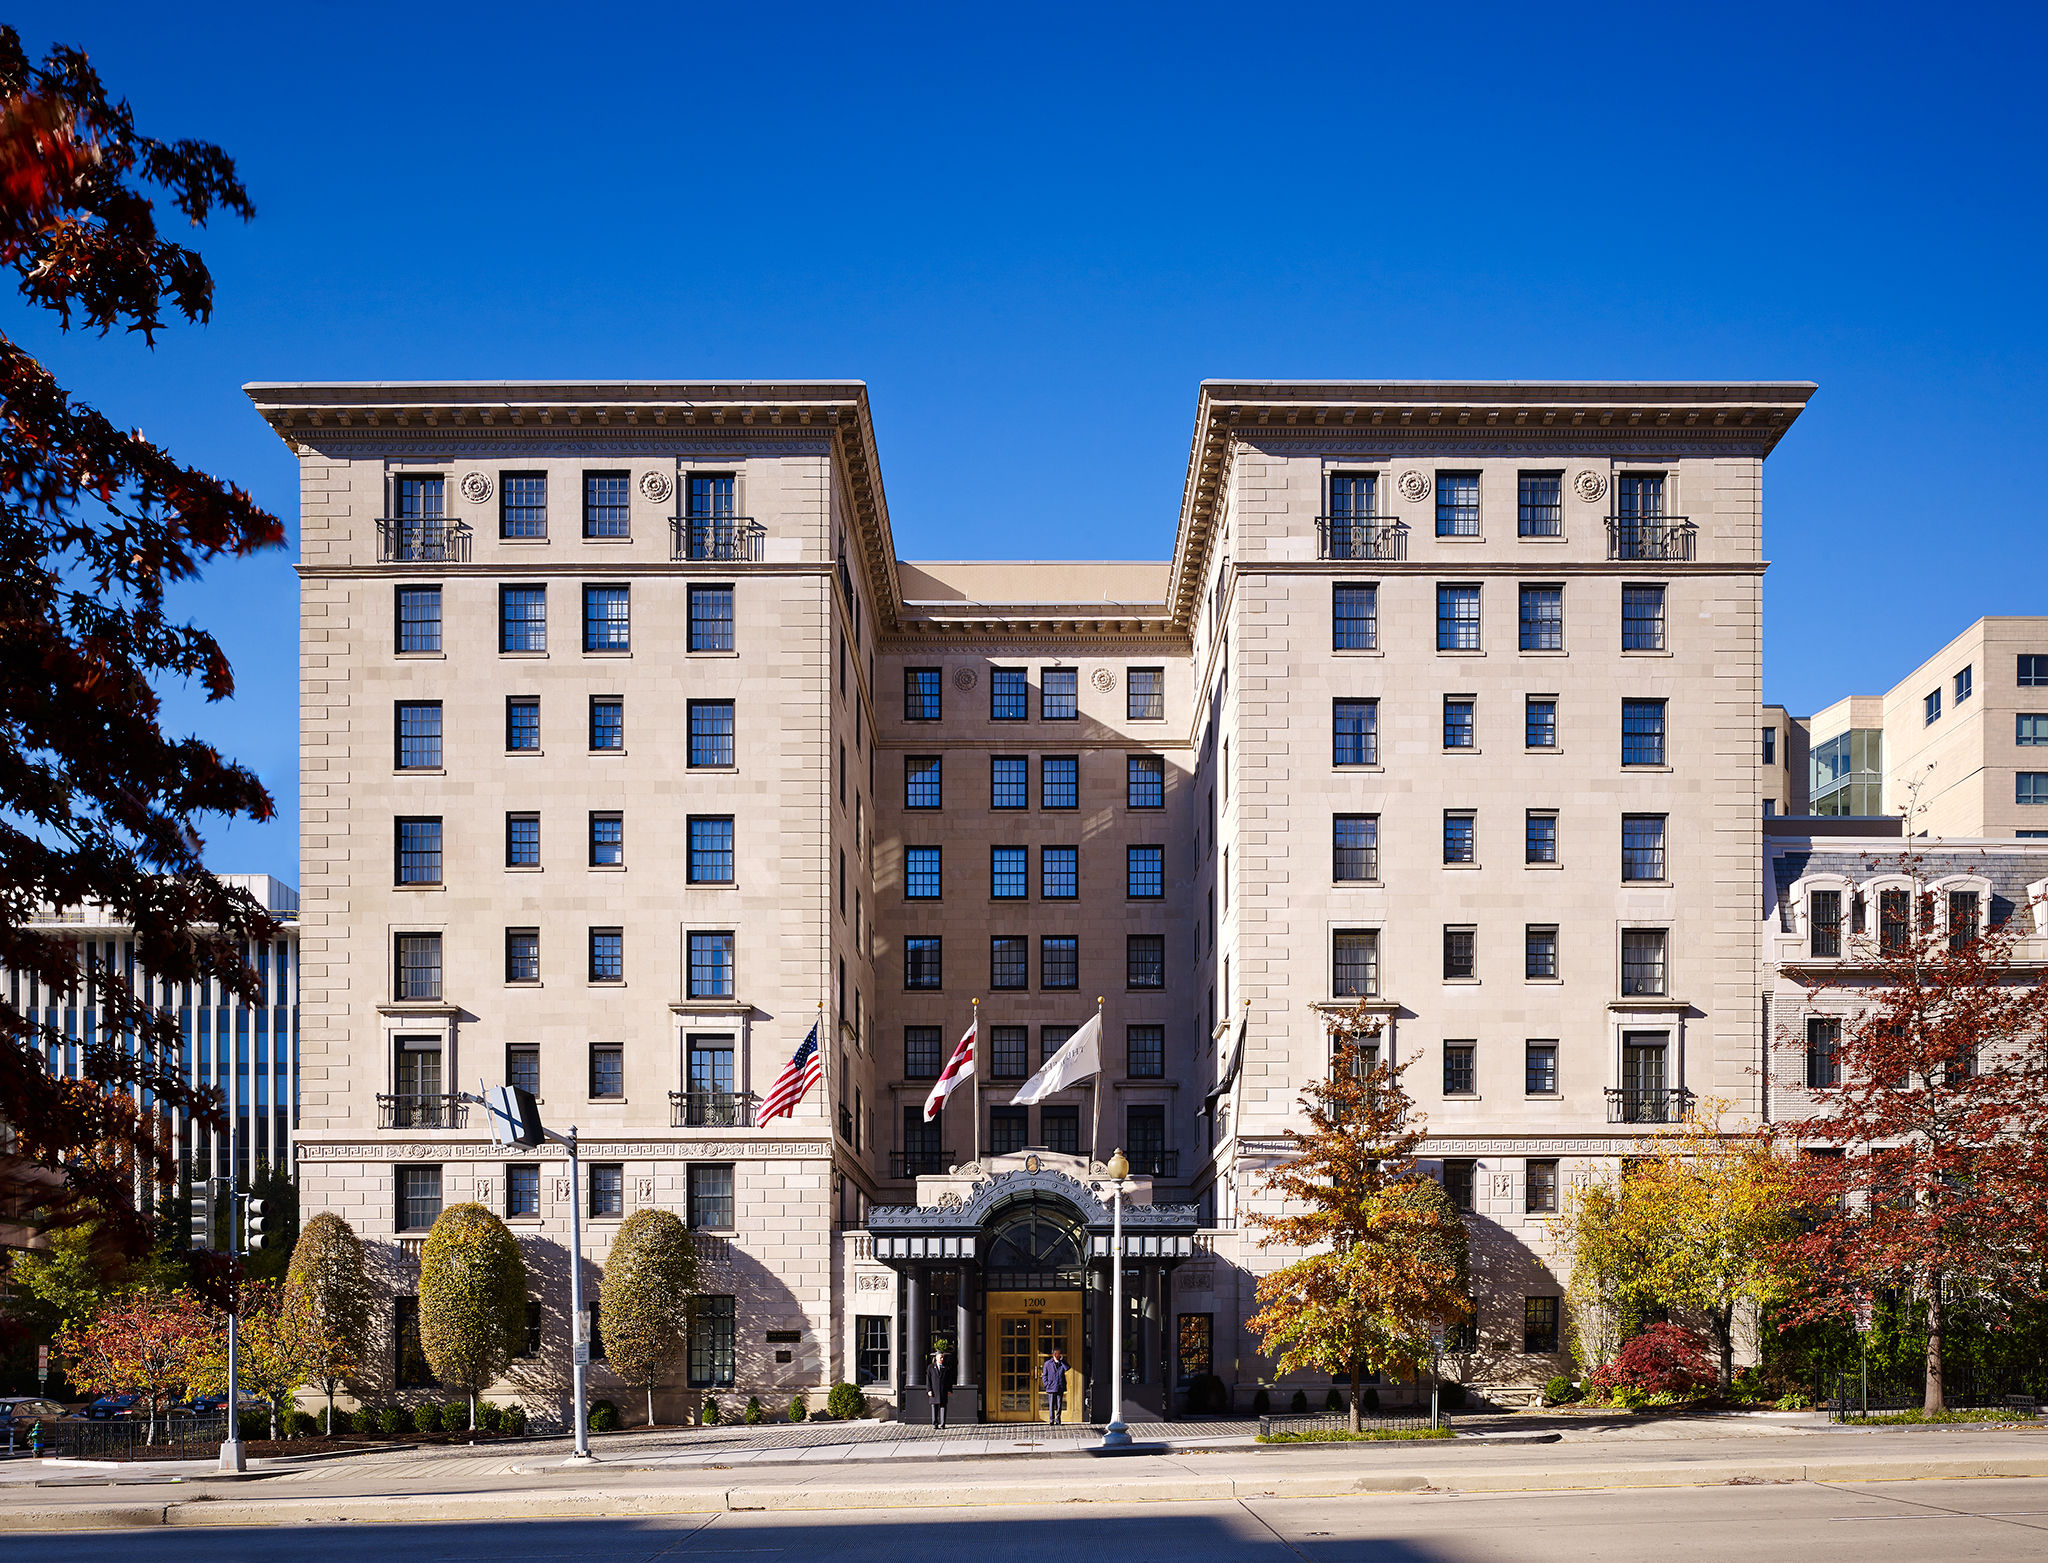 Jefferson Hotel  RepEquity  Washington, DC      Return to Projects